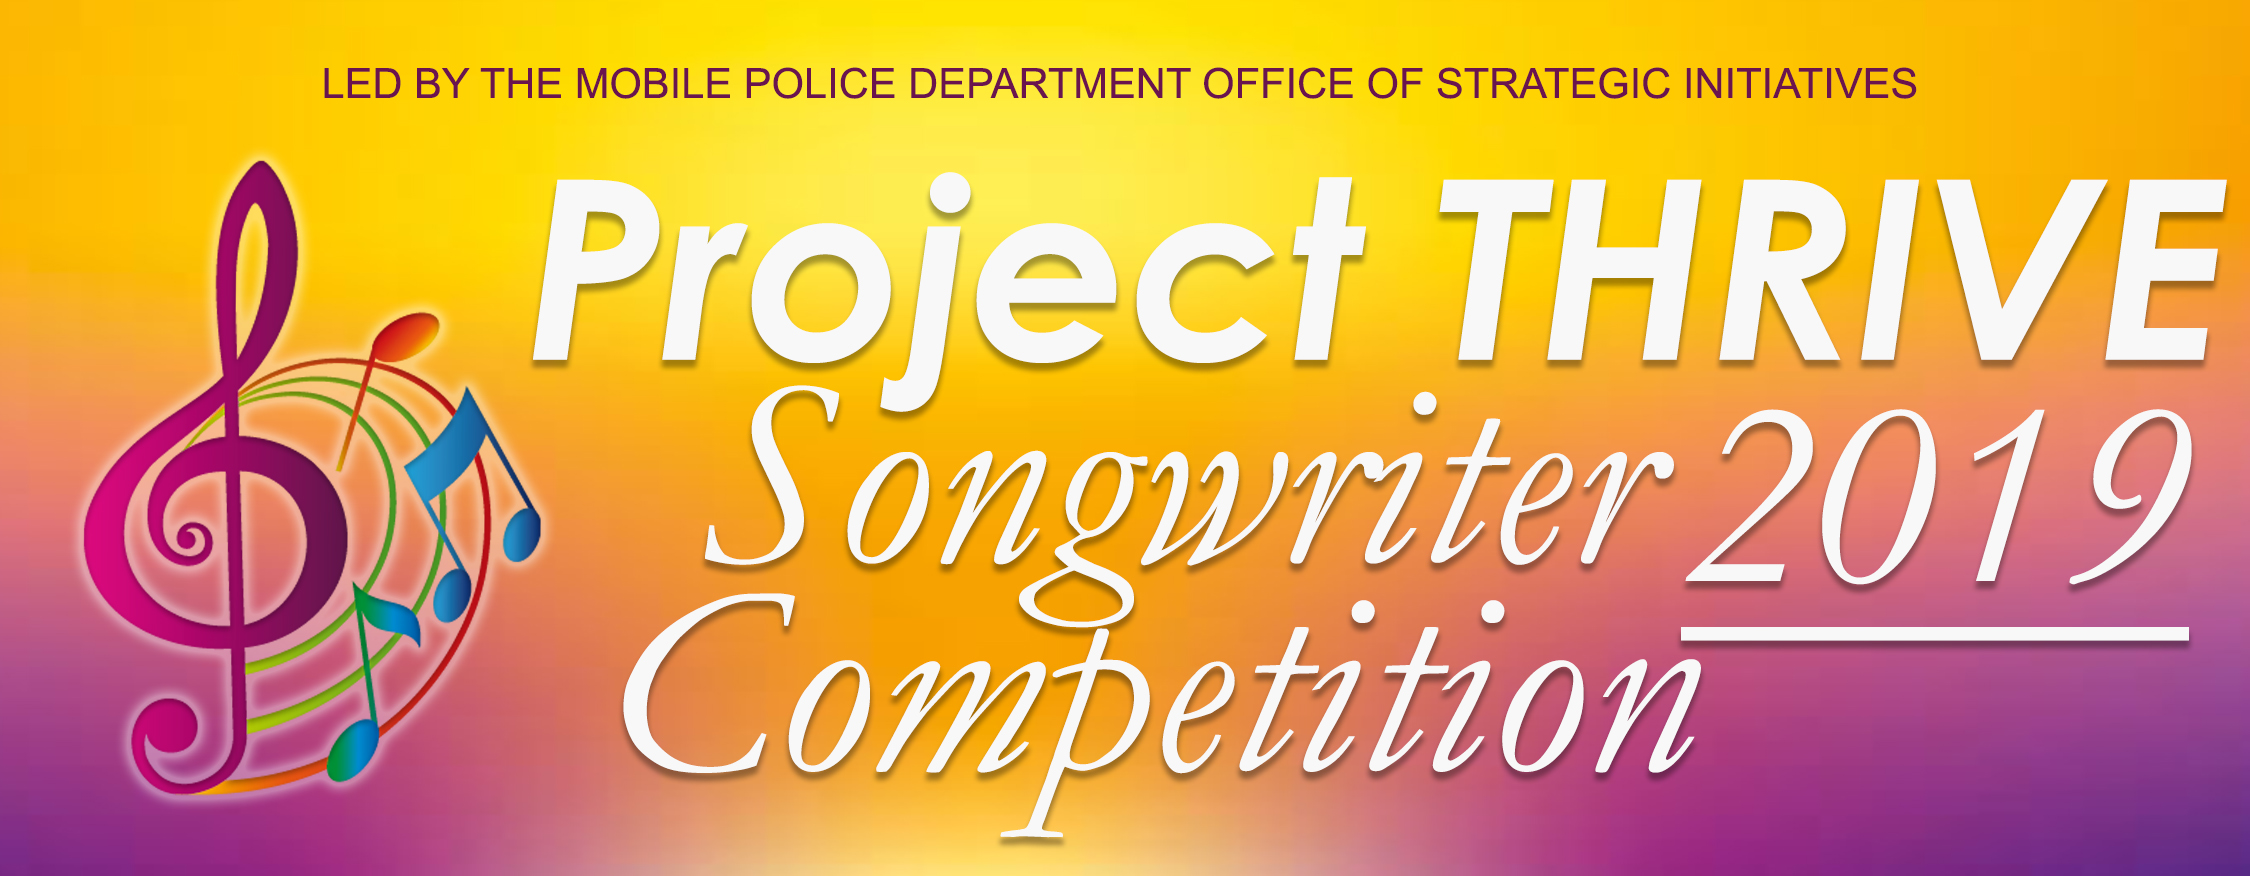 Project THRIVE Songwriter Competition : Mobile Police Department